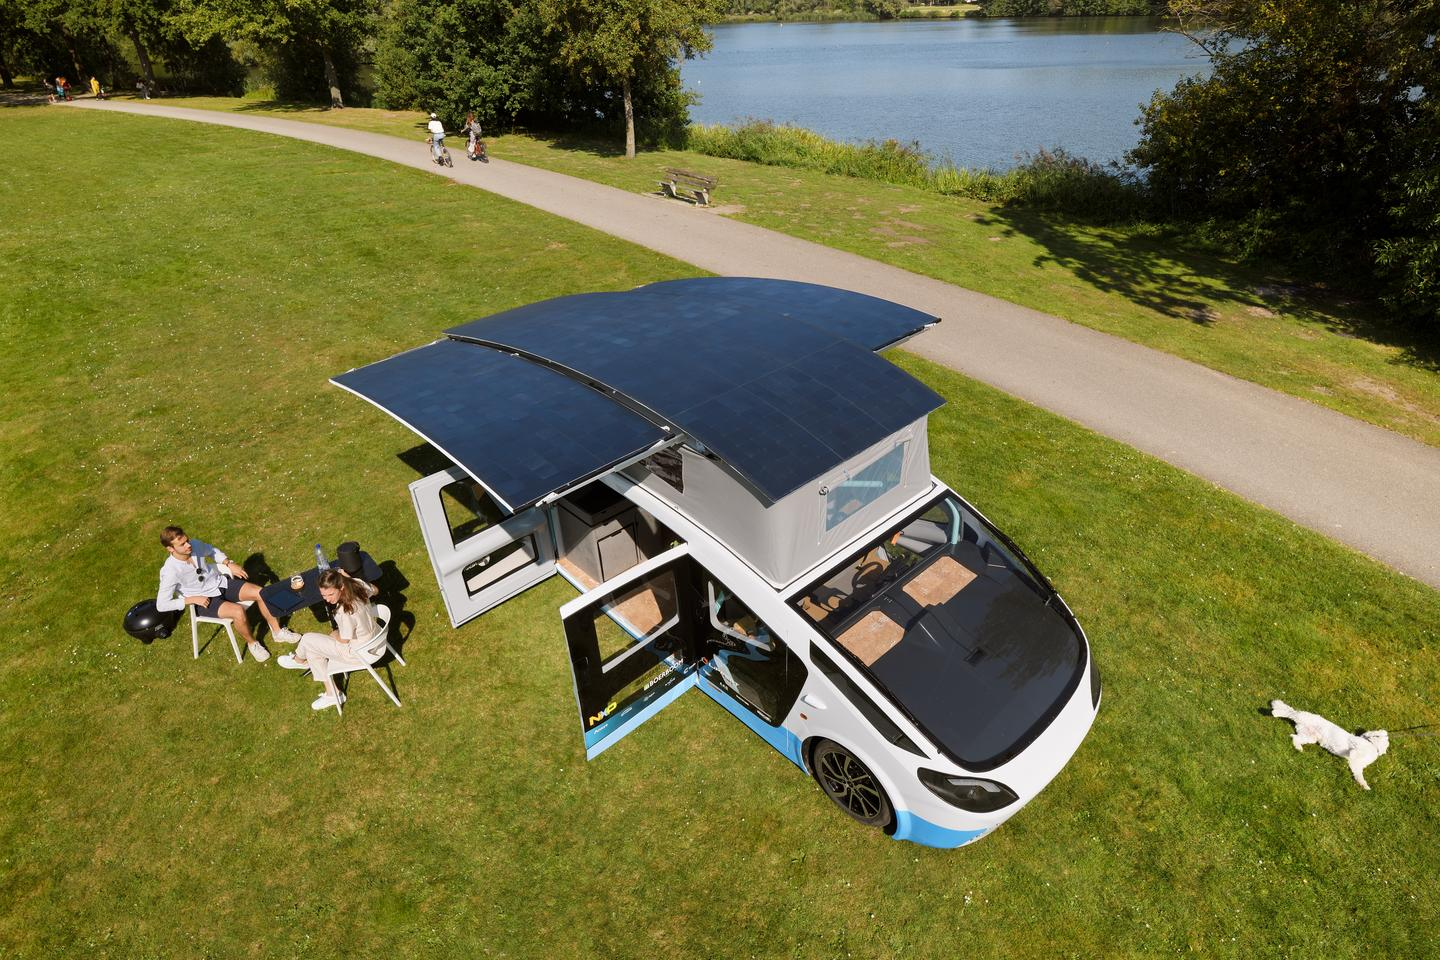 The solar array can double in size at camp thanks to additional fold-out panels